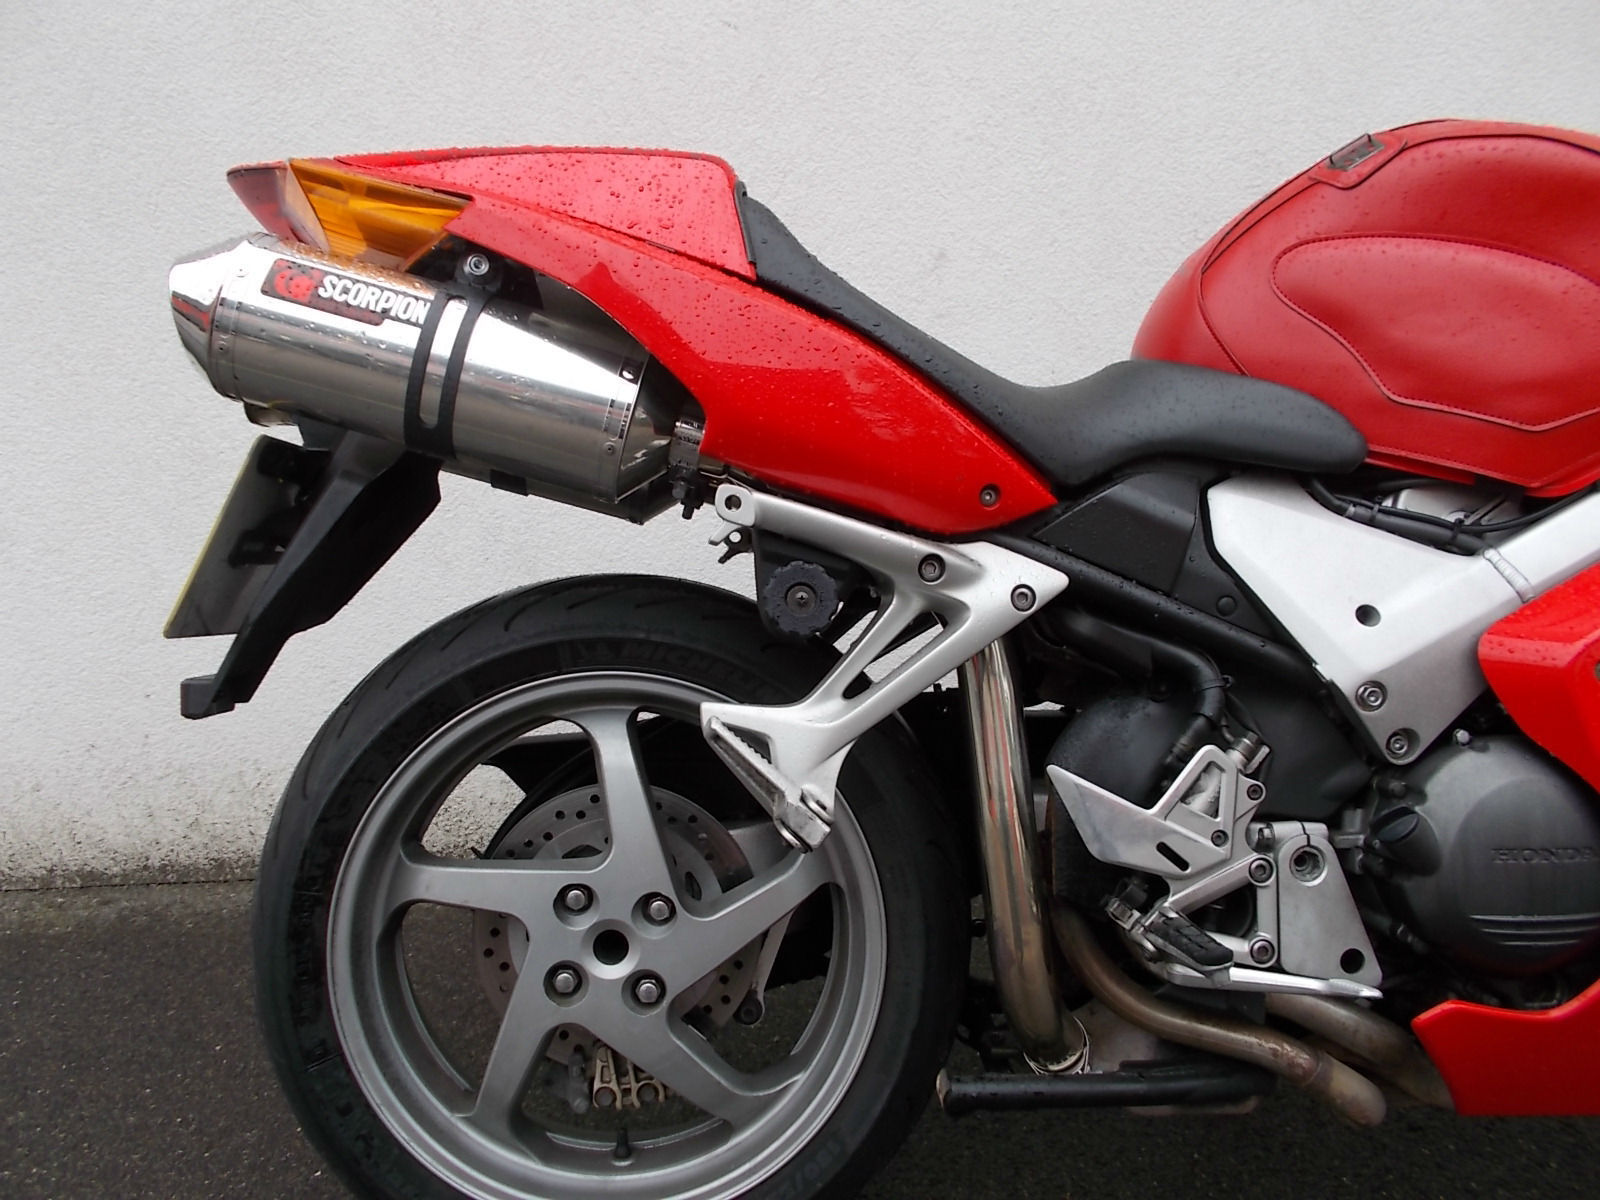 honda vfr 800 a 5 abs scorpion exhausts. Black Bedroom Furniture Sets. Home Design Ideas